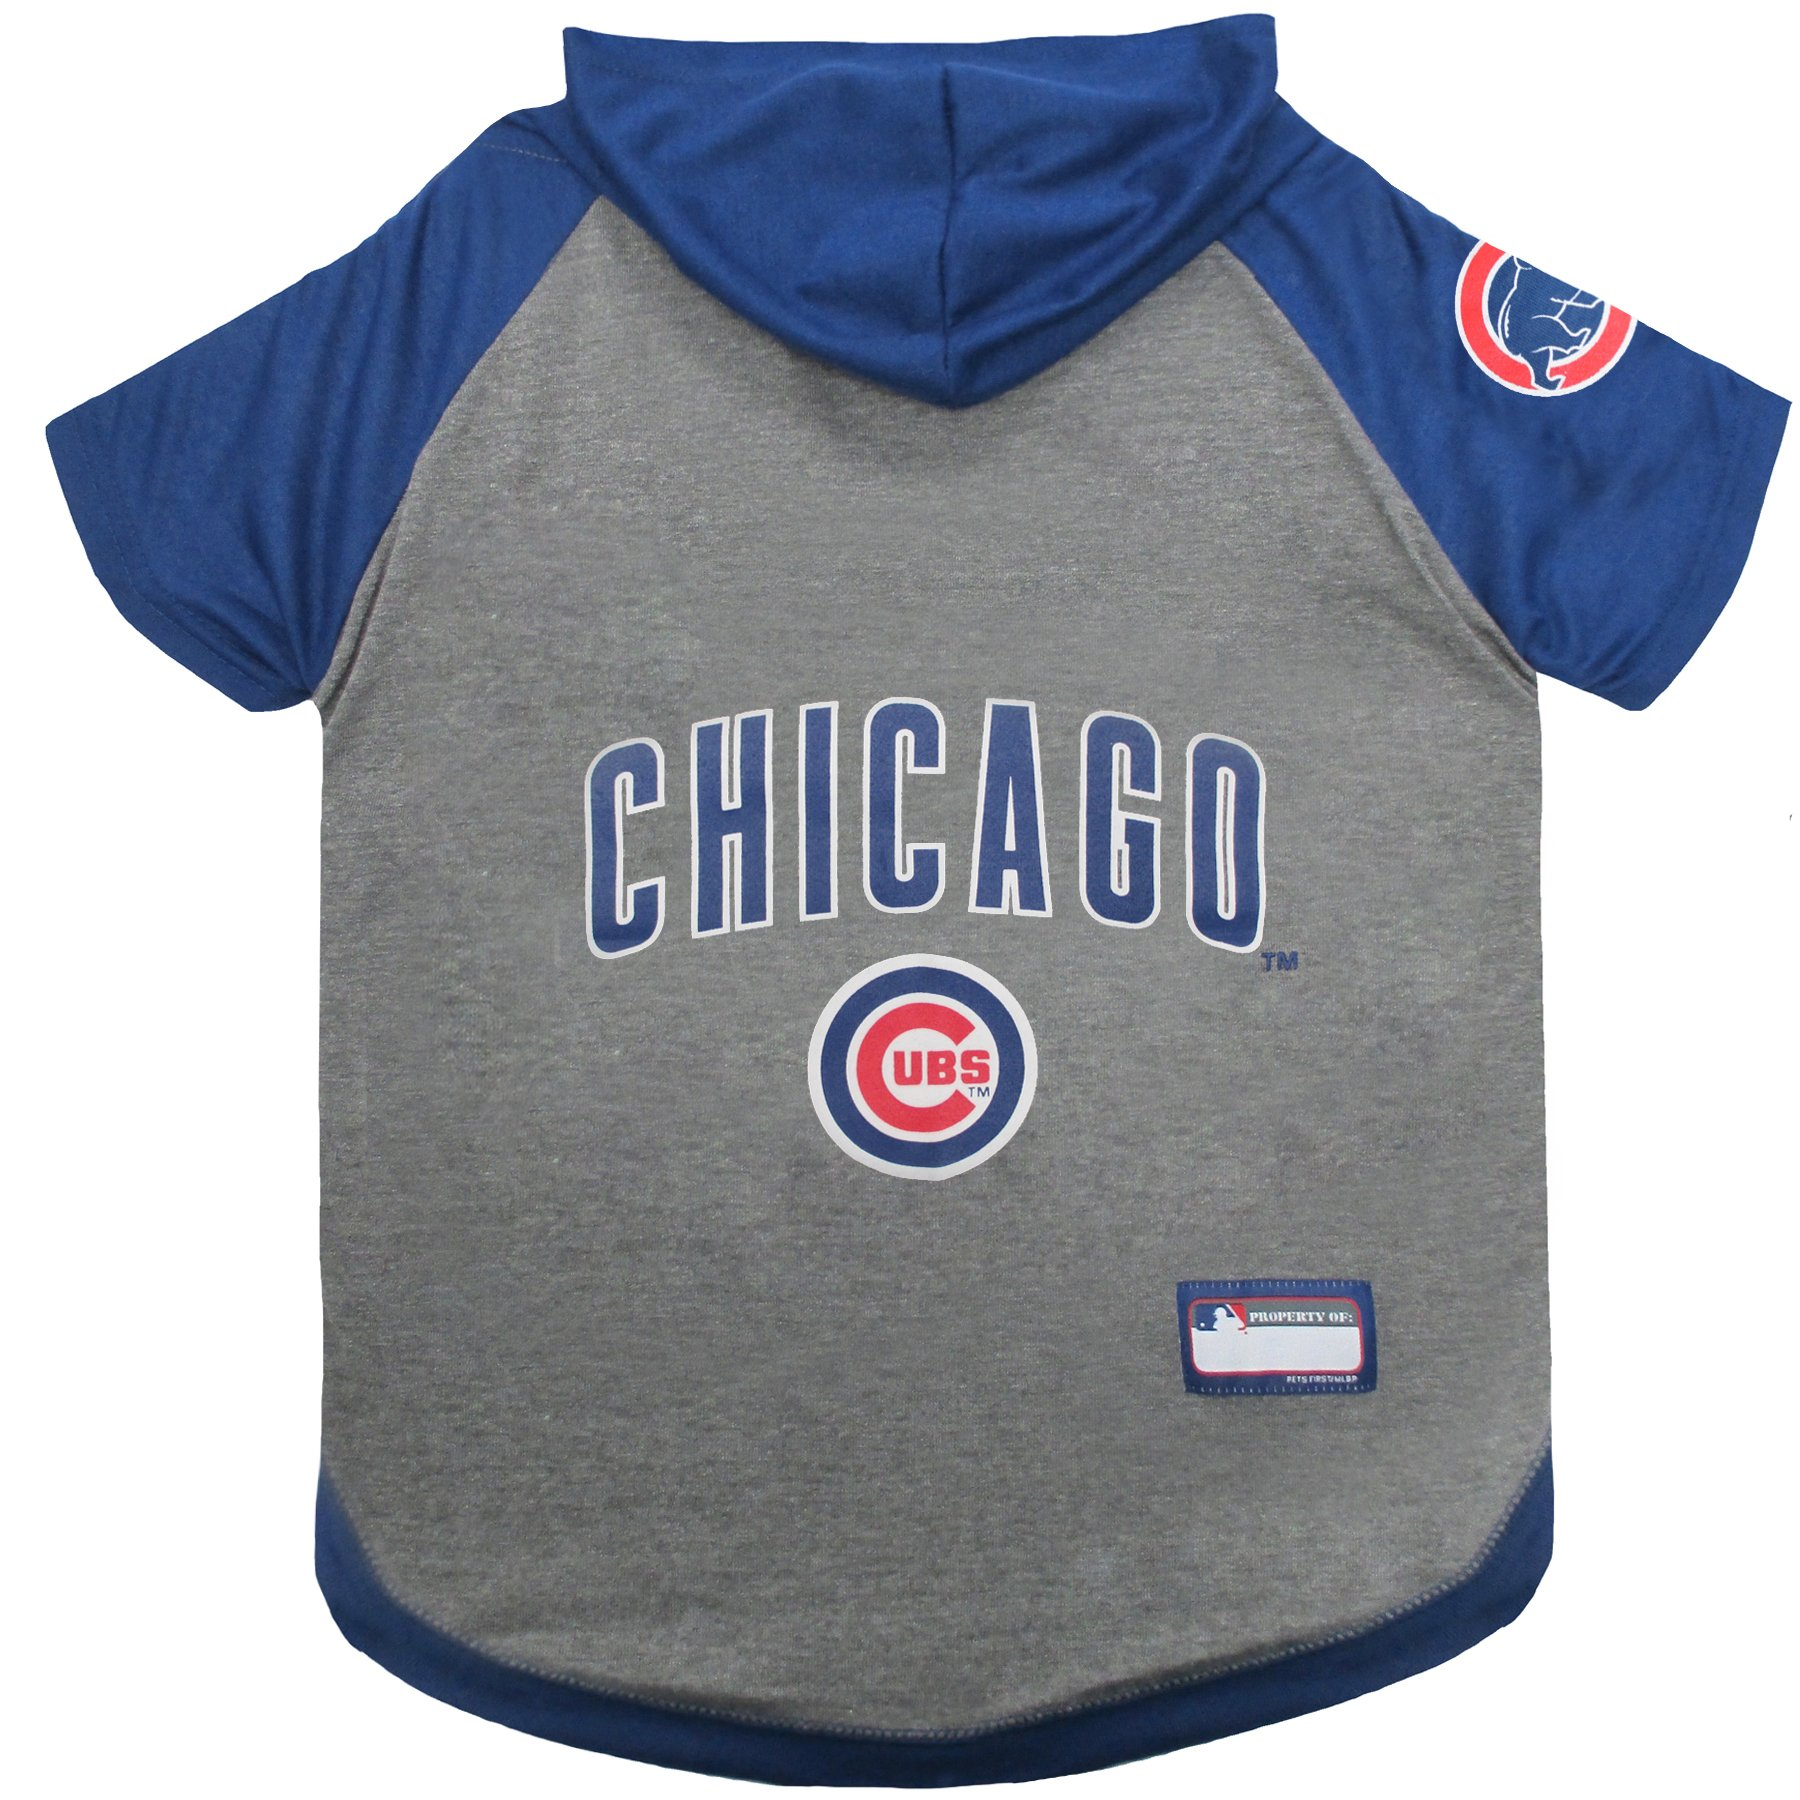 MLB PET APPAREL. - Licensed BASEBALL JERSEYS, T-SHIRTS, DUGOUT JACKETS, CAMO JERSEYS, HOODIE TEE's & PINK JERSEYS for DOGS & CATS, Chicago Cubs, Medium Shirt for Pets